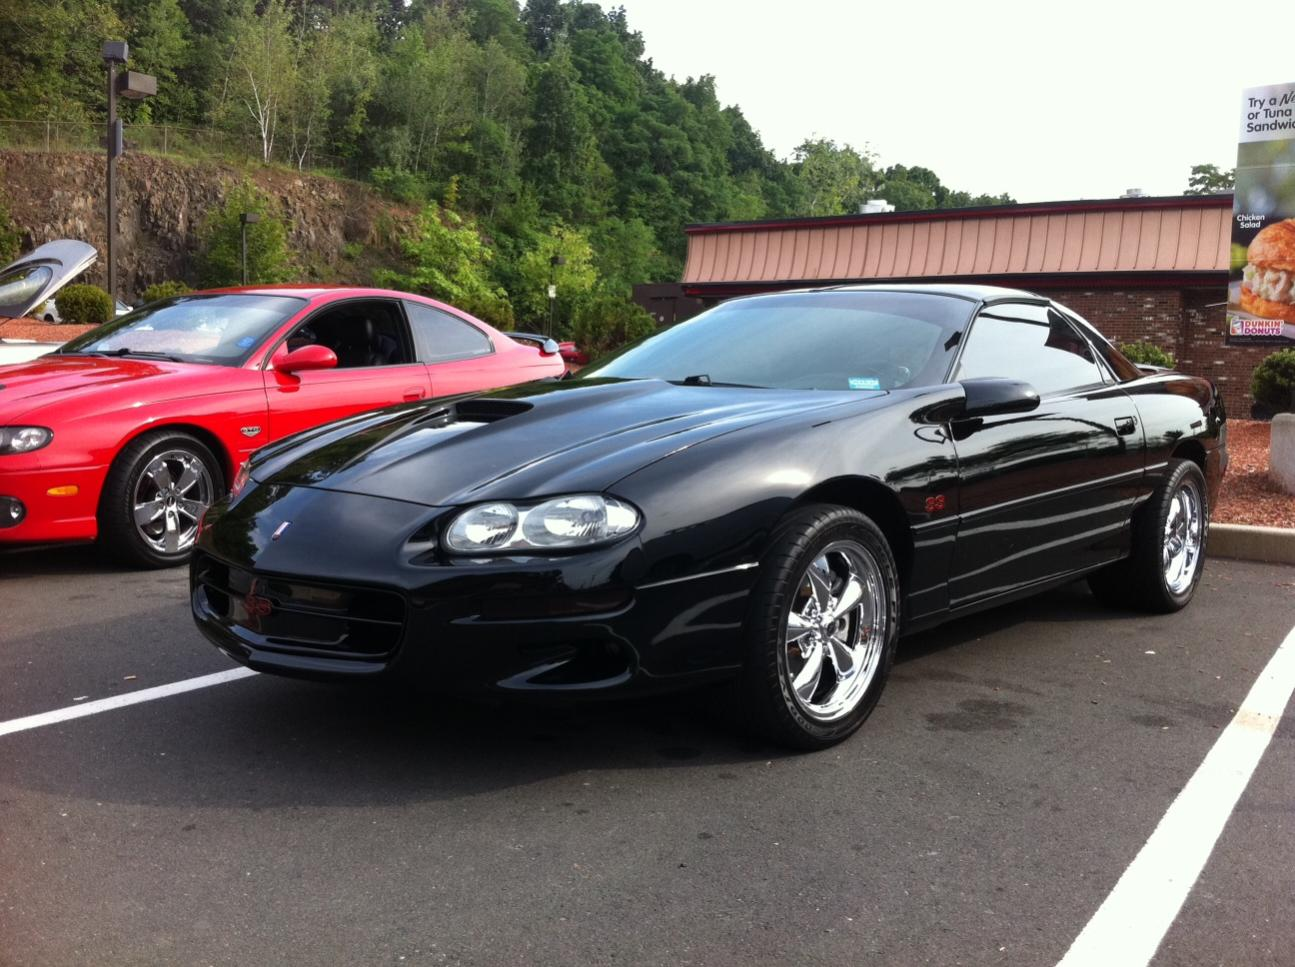 hight resolution of  2000 camaro ss black very clean photo 3 jpg